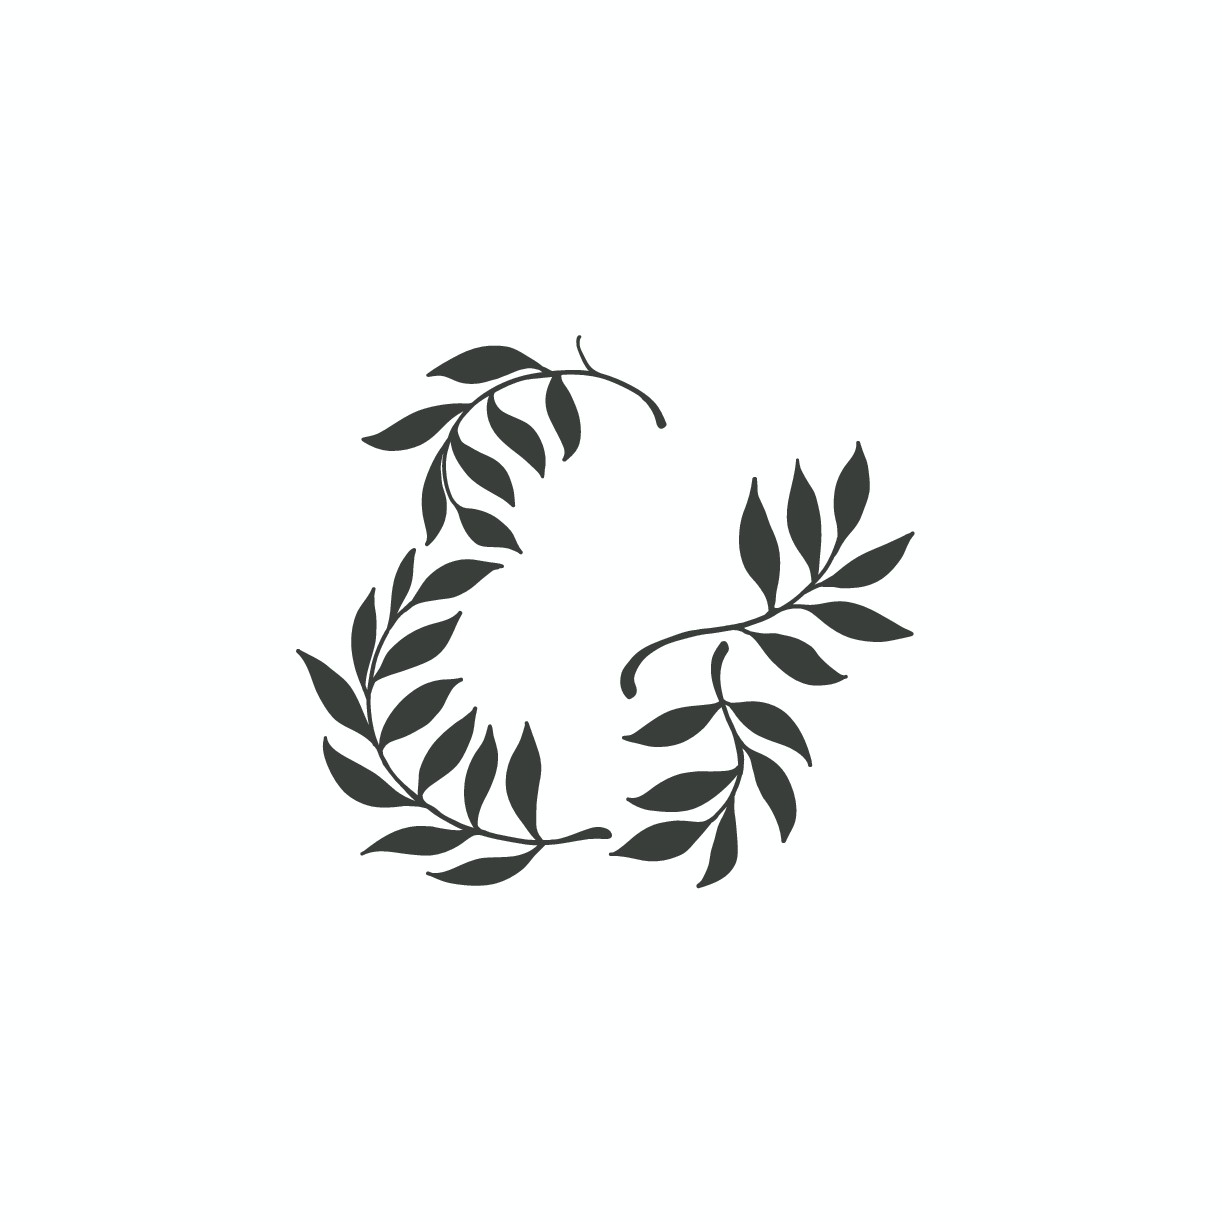 Fern Ampersand (the AND symbol)